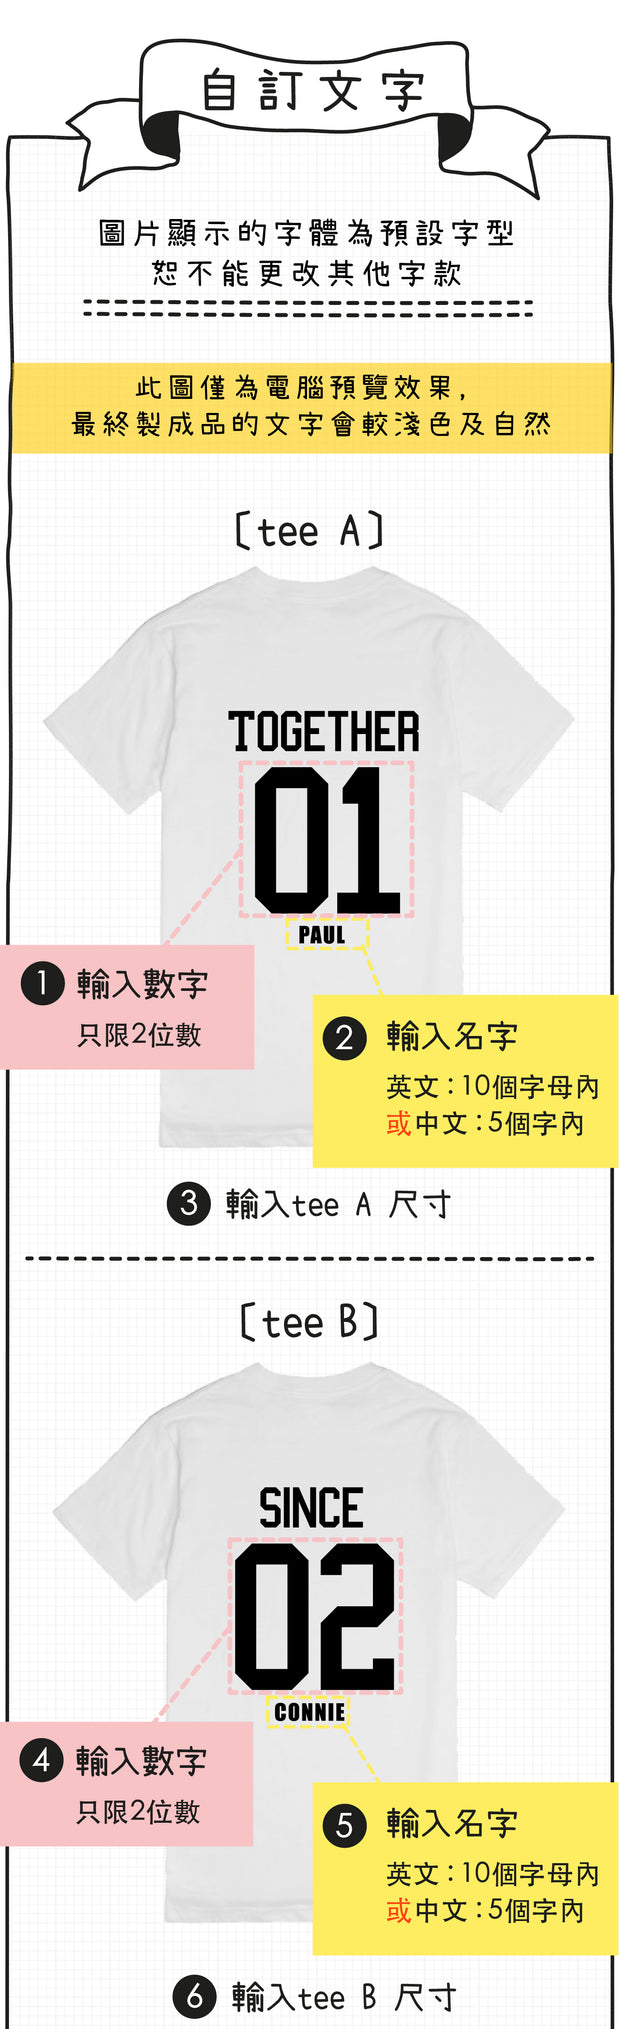 親子裝 T-shirt | Together Since紀念日